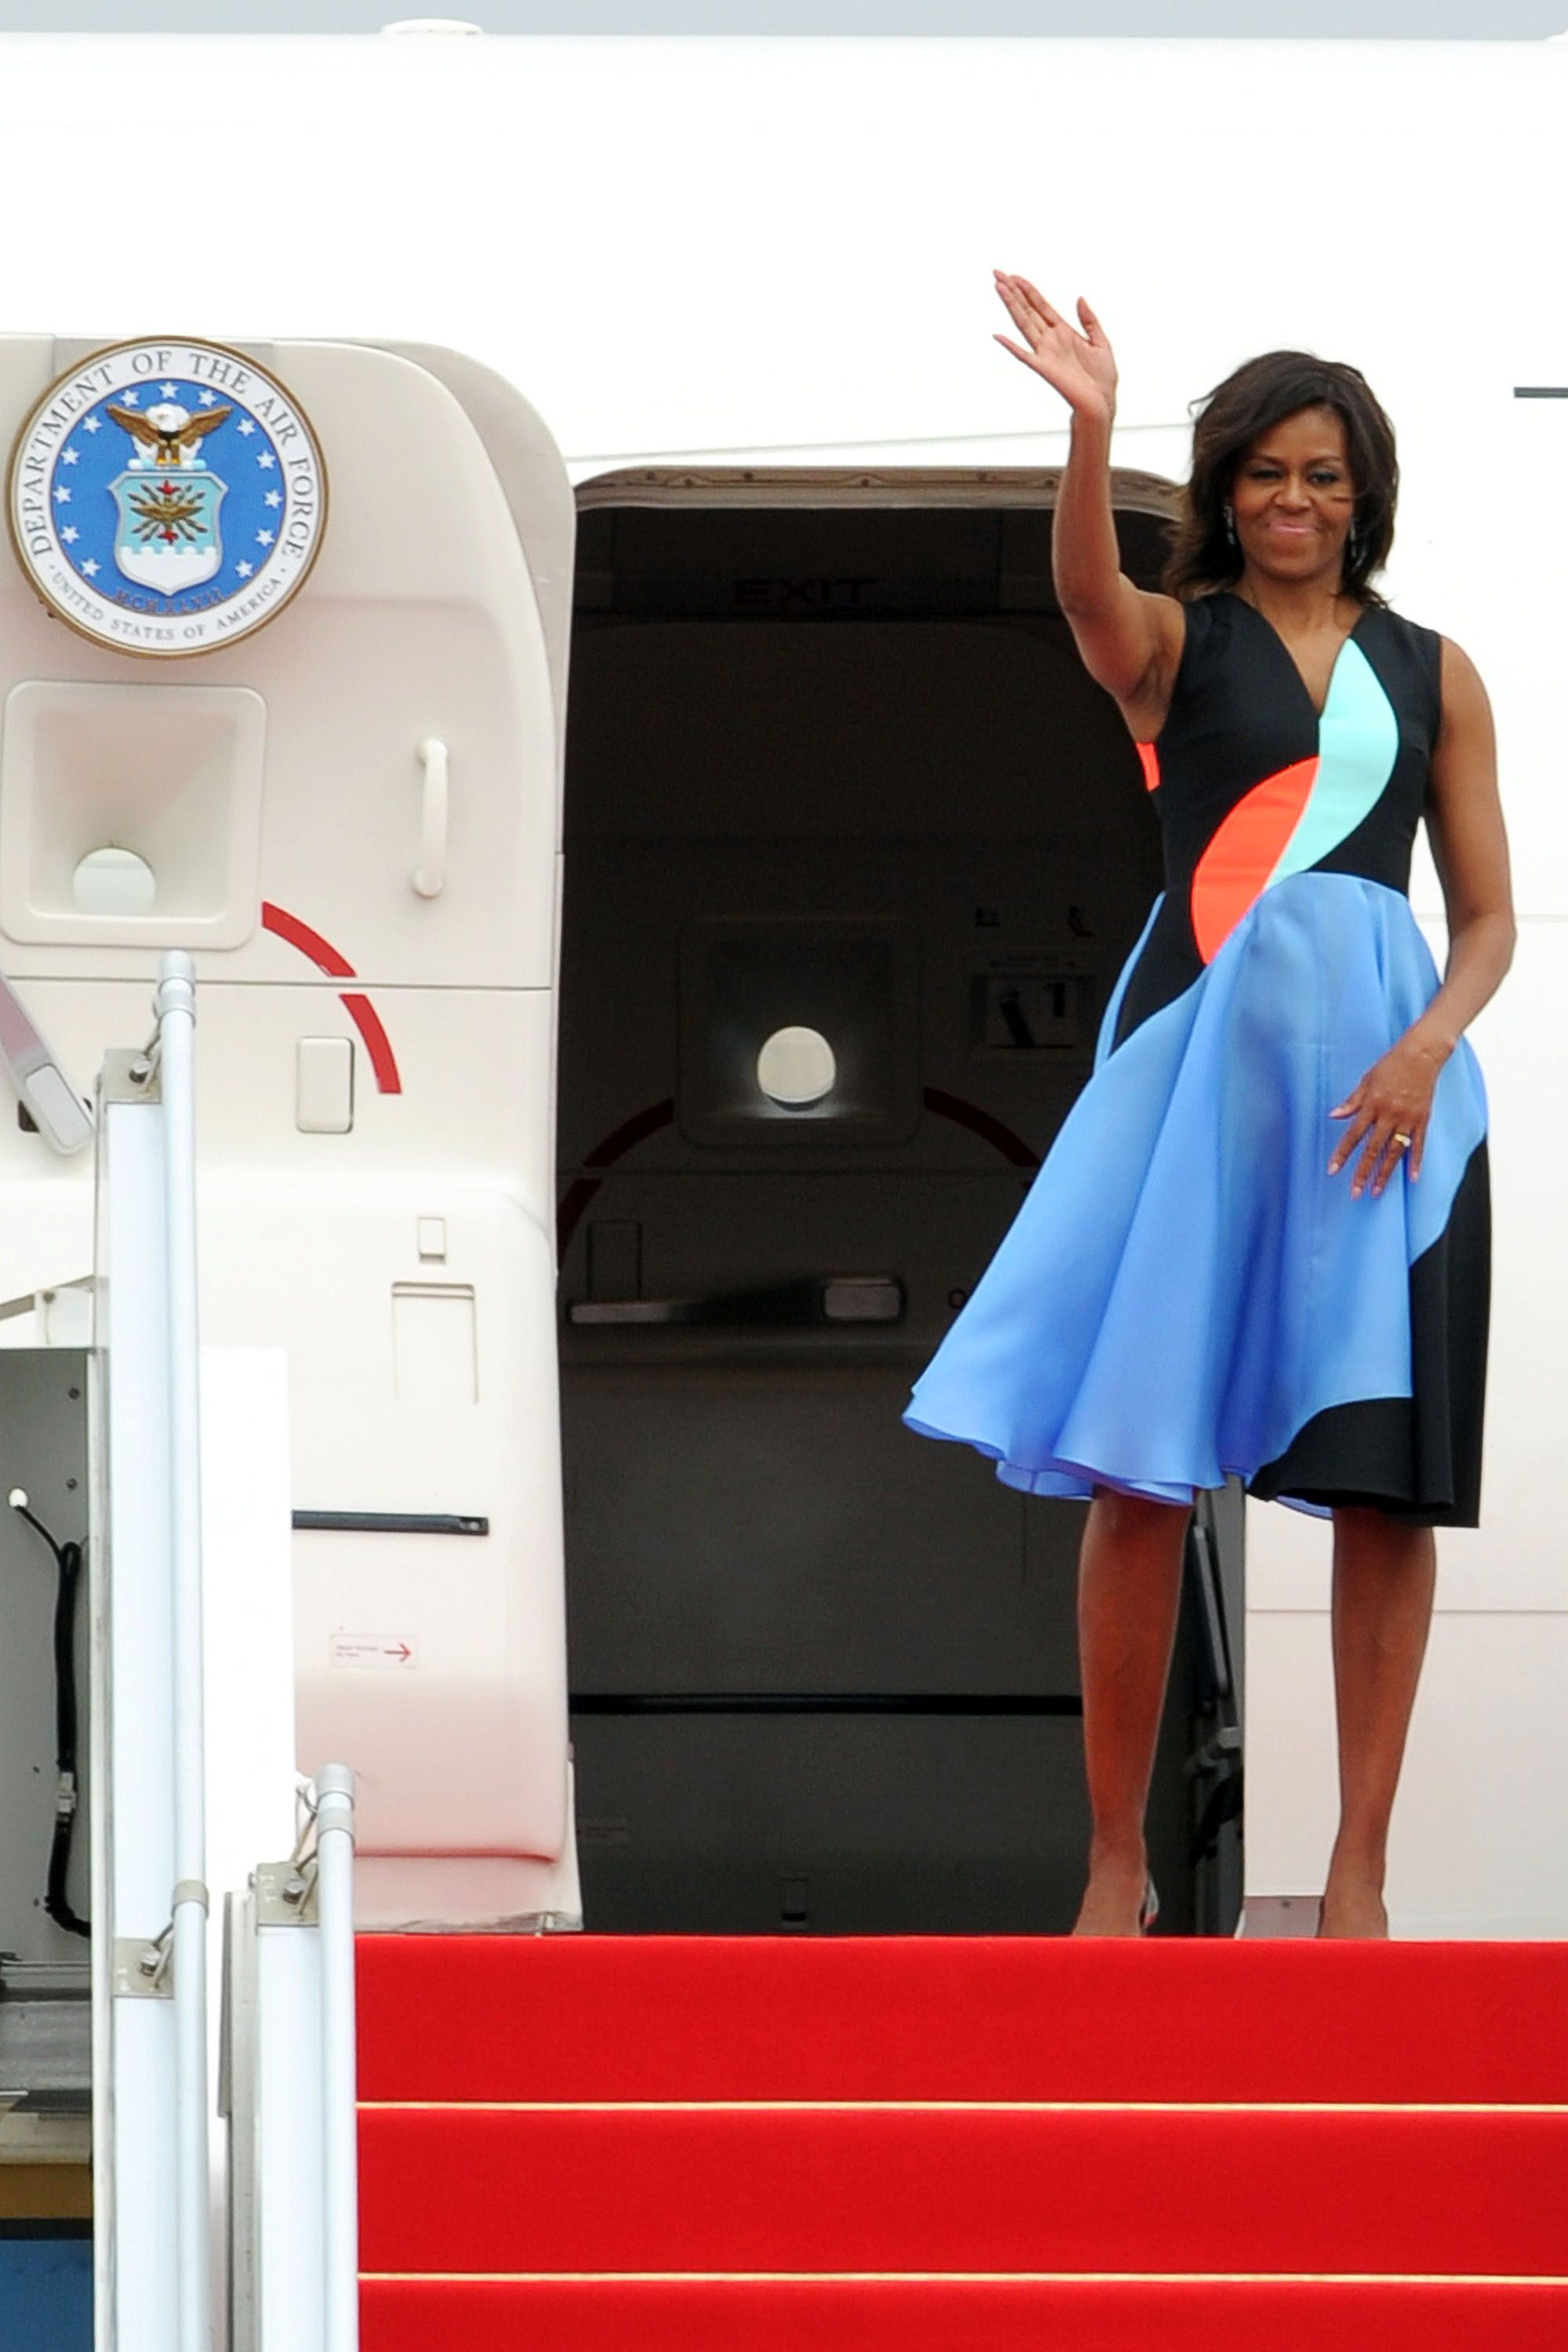 US First Lady Michelle Obama waves goodbye as she departs from Siem Reap's international airport on March 22, 2015. Michelle Obama headed home from Cambodia after a five-day Asia trip highlighting the importance of girls' education.    AFP PHOTO / TANG CHHIN SOTHY        (Photo credit should read TANG CHHIN SOTHY/AFP/Getty Images)